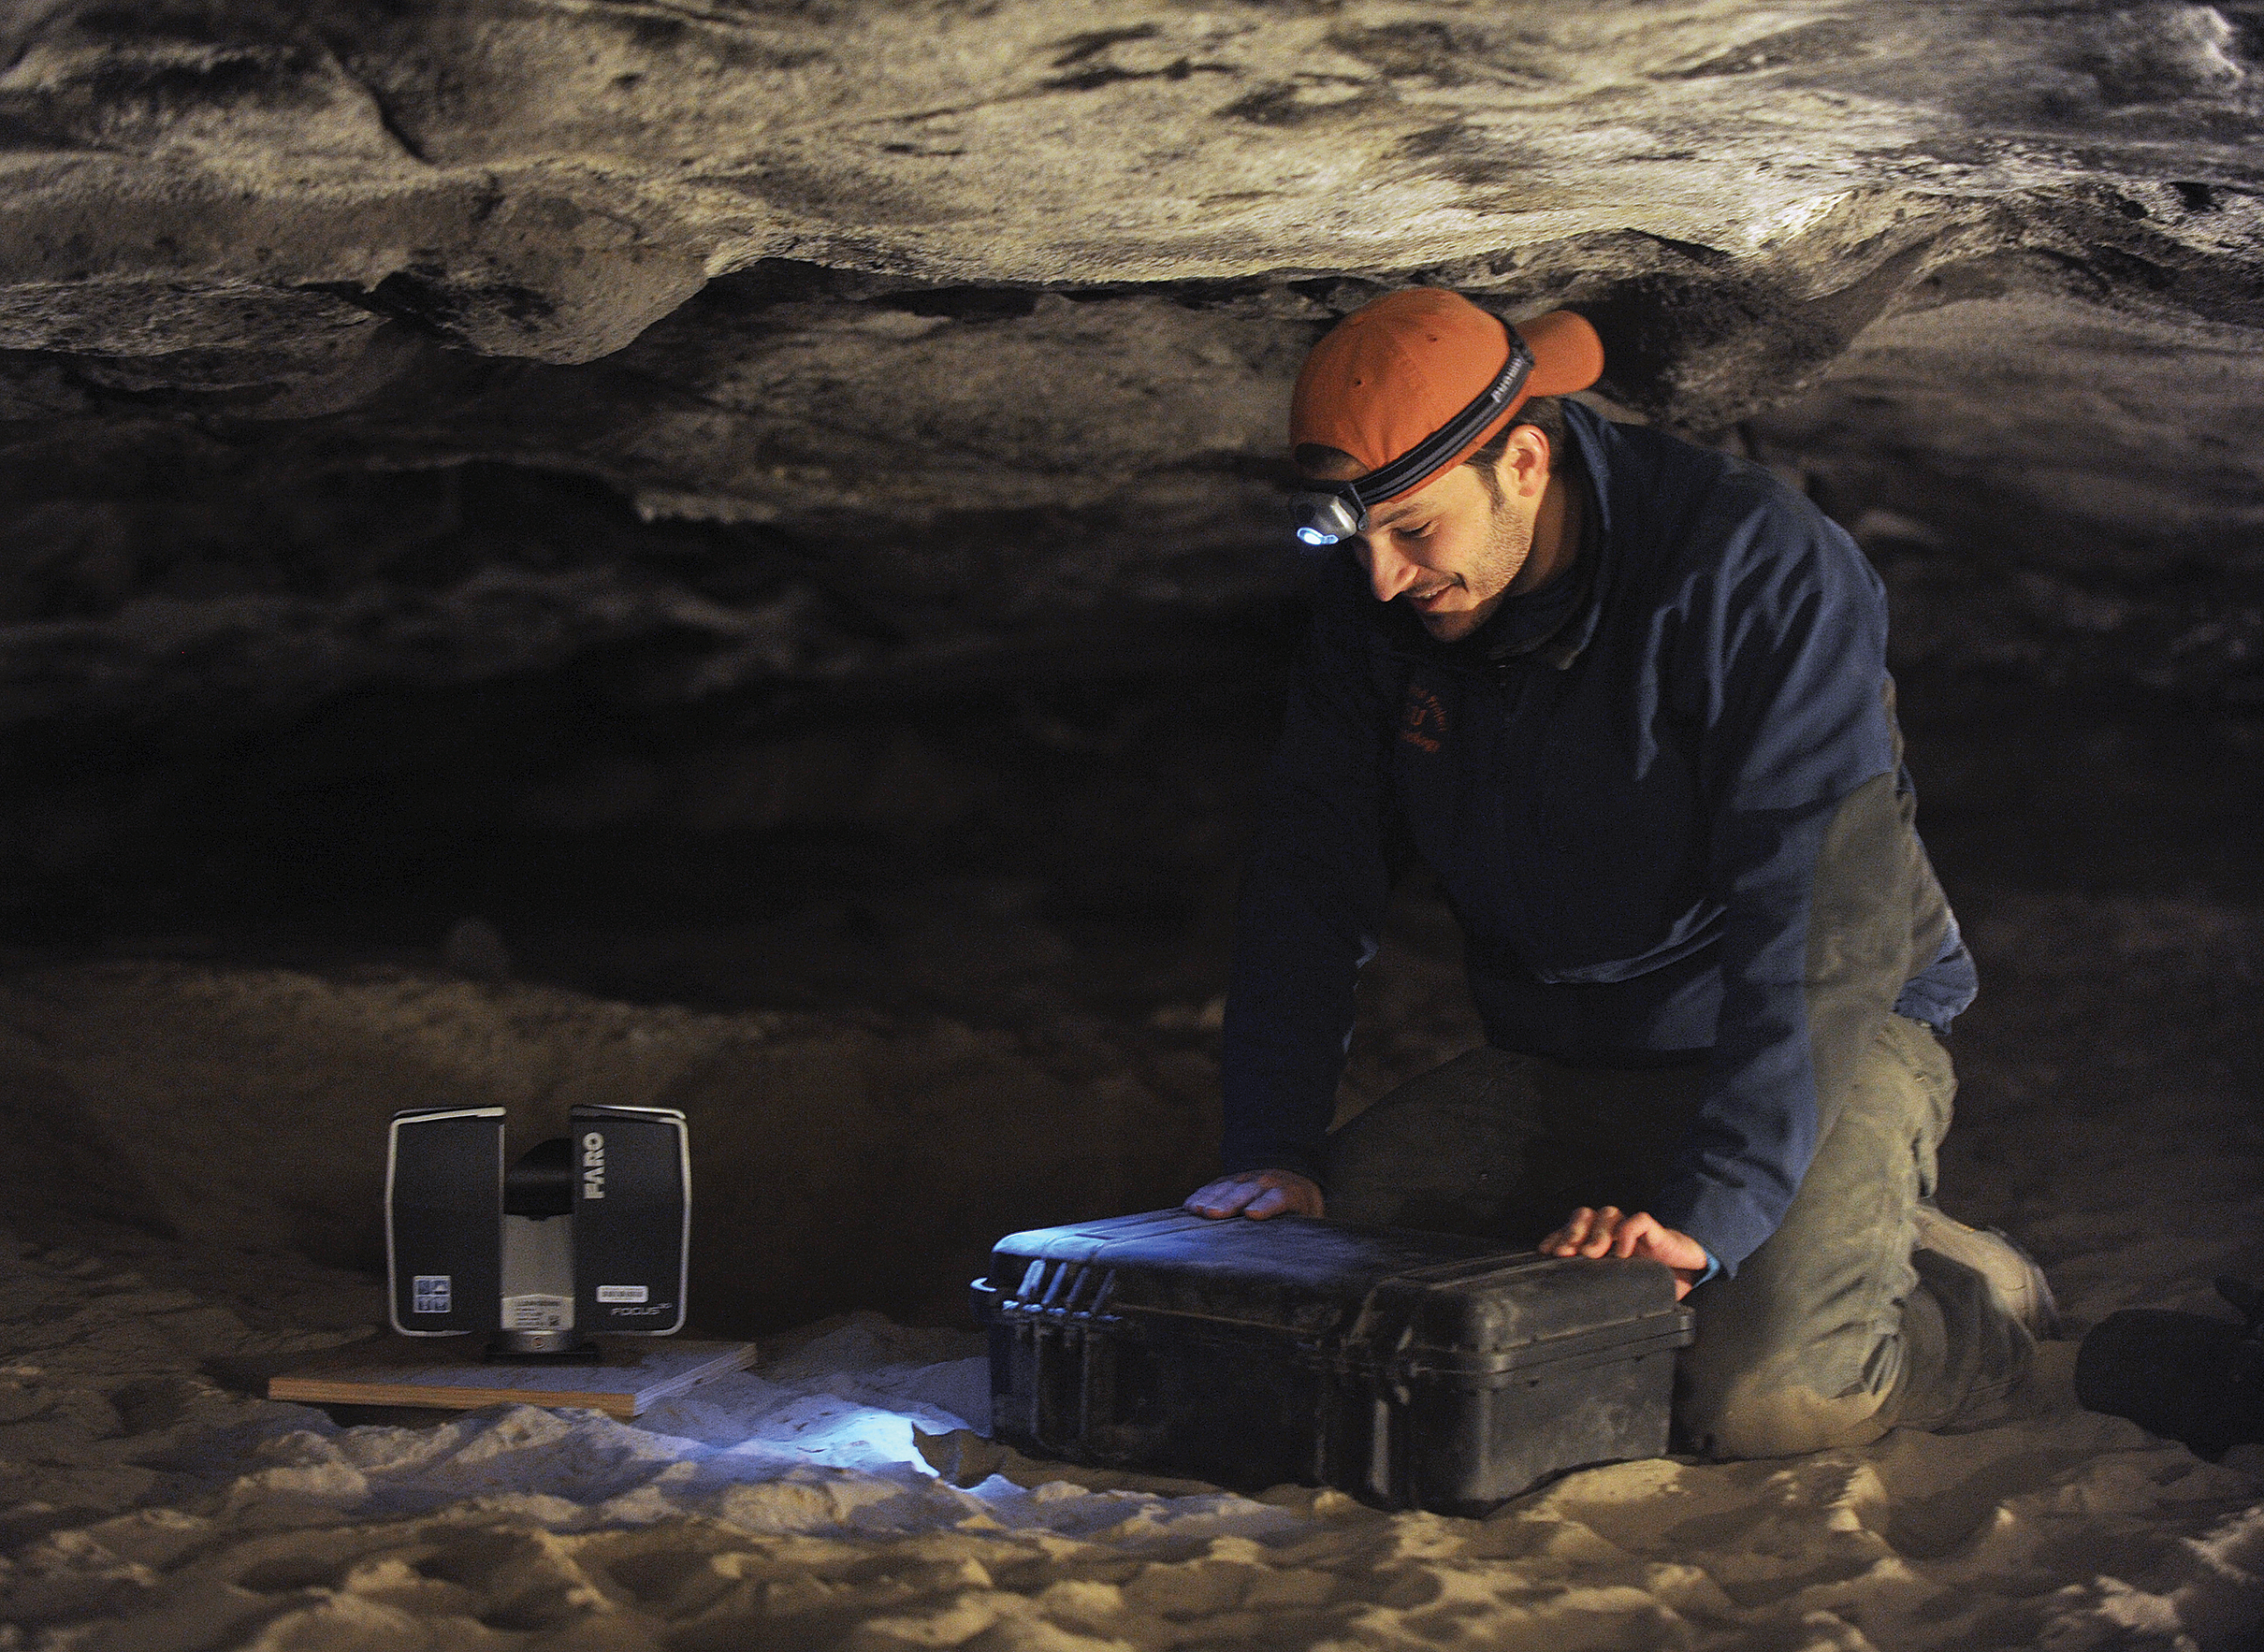 Nicholas Holmer, research associate for Idaho Virtualization Laboratory, sets up the FARO Focus 3-D Lidar Scanner Feb. 27 at the dump sight of a cold case murder from 1979 in Dubois. With the scanner, Holmer will be able to make a 3-D map of the cave with millimeter accuracy.